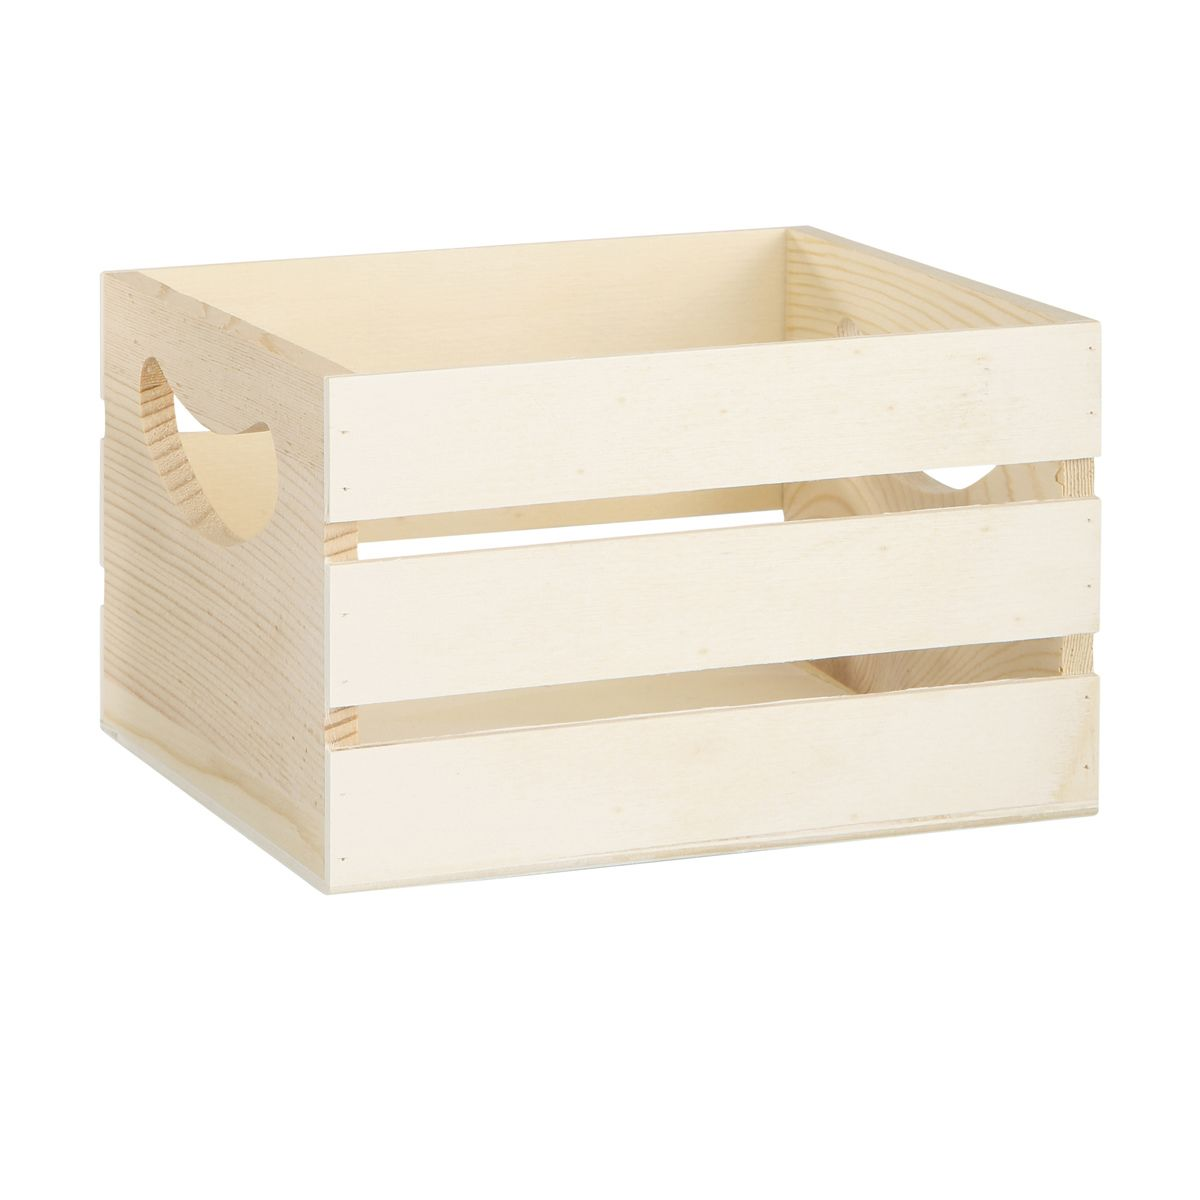 Wooden Crate In 2019 Black Cherry Wooden Gift Boxes Home Office